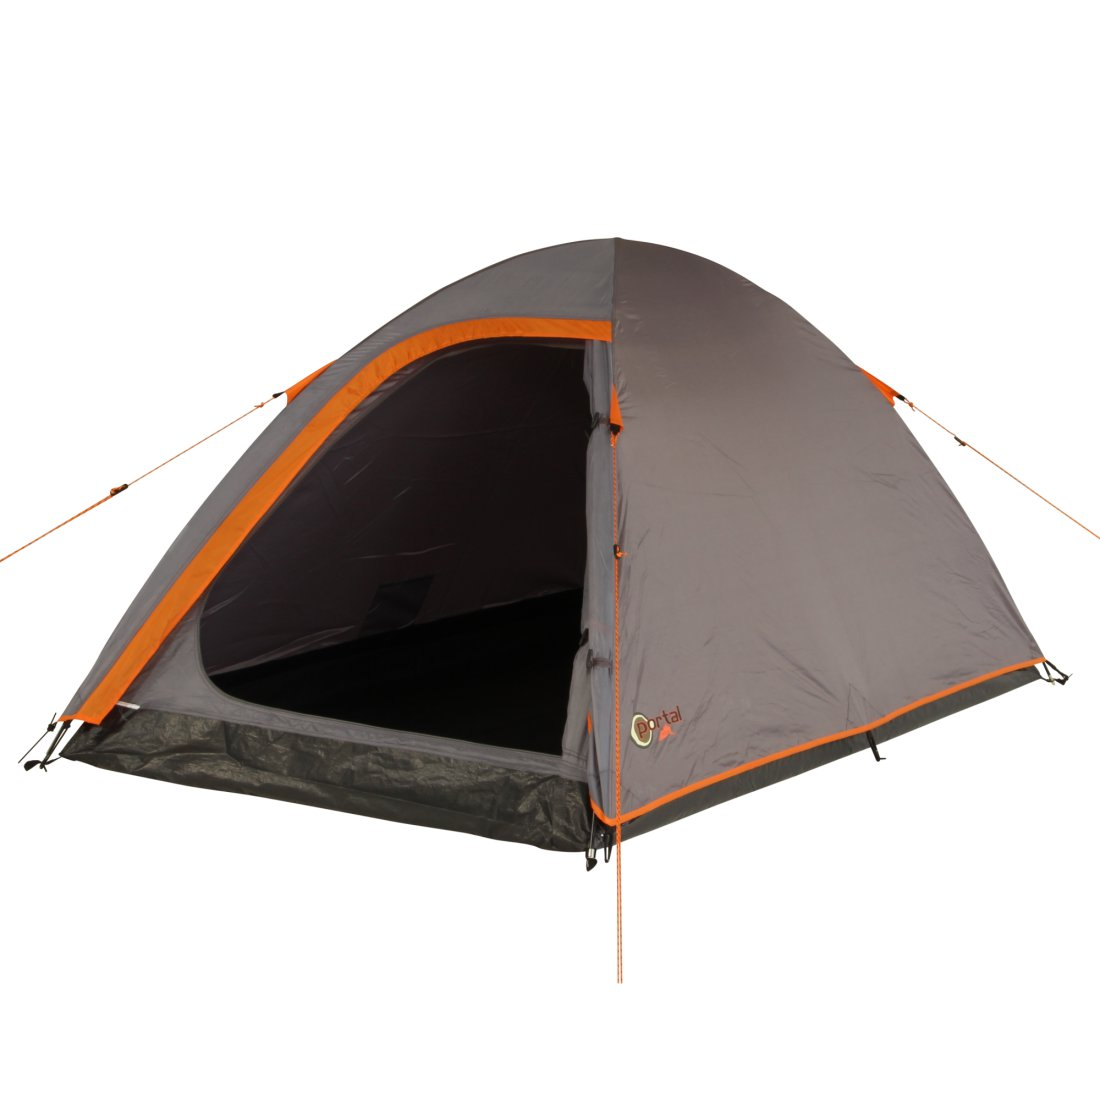 Two Person Tent : Buy portal leo person dome tent trekking touring